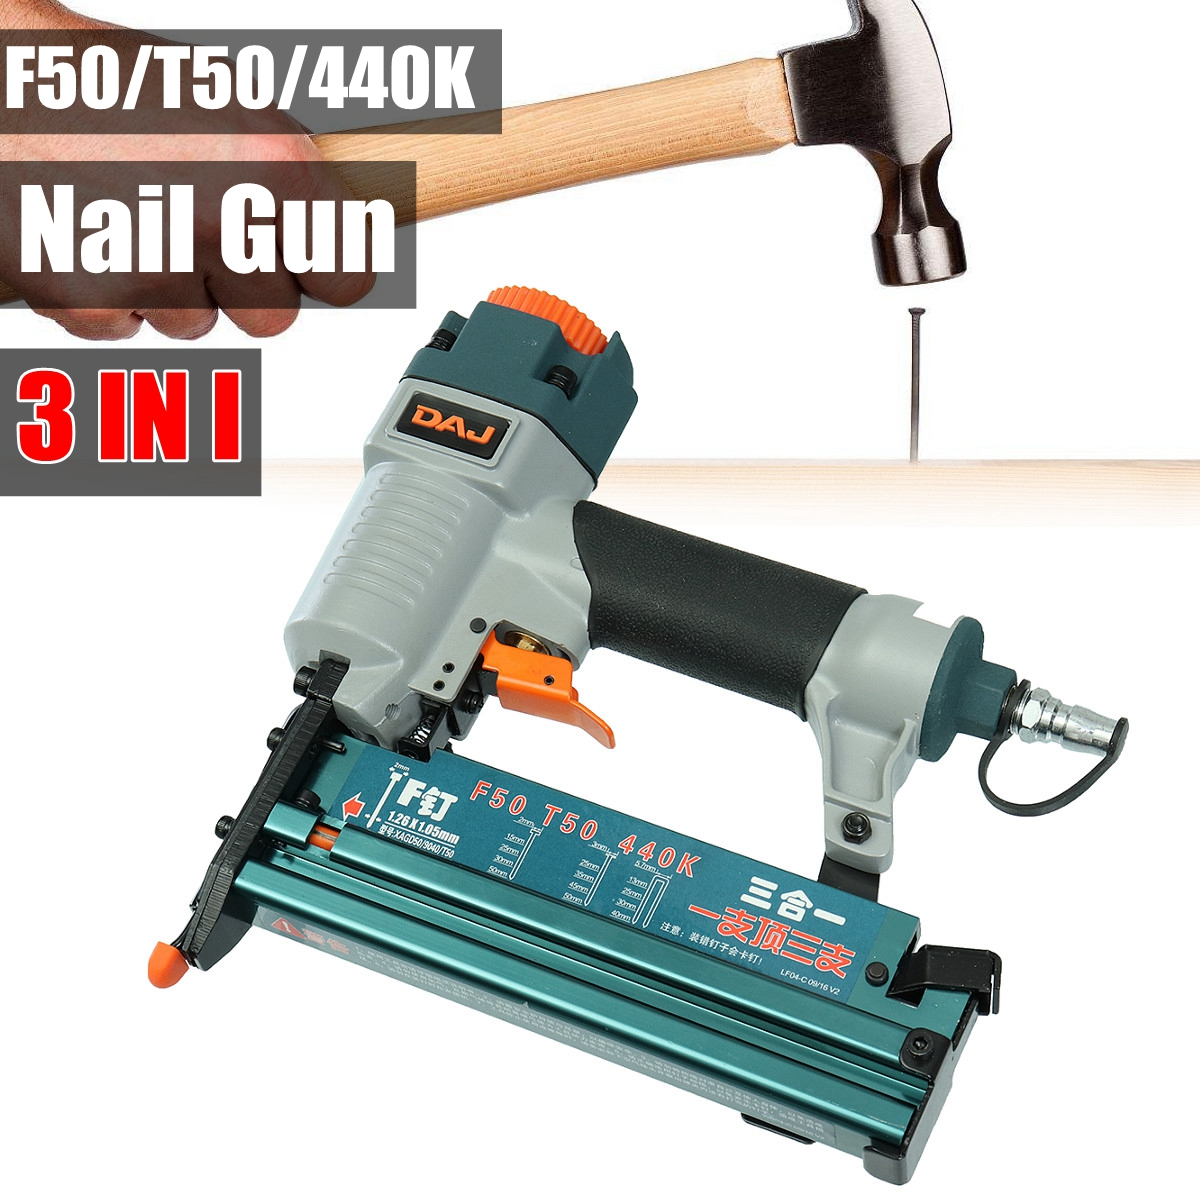 цена на Portable 3 In1 Air Brad Nail G un Stapler Finish Nailer Pneumatic Finishing Nail Tool For T50 F50 440K